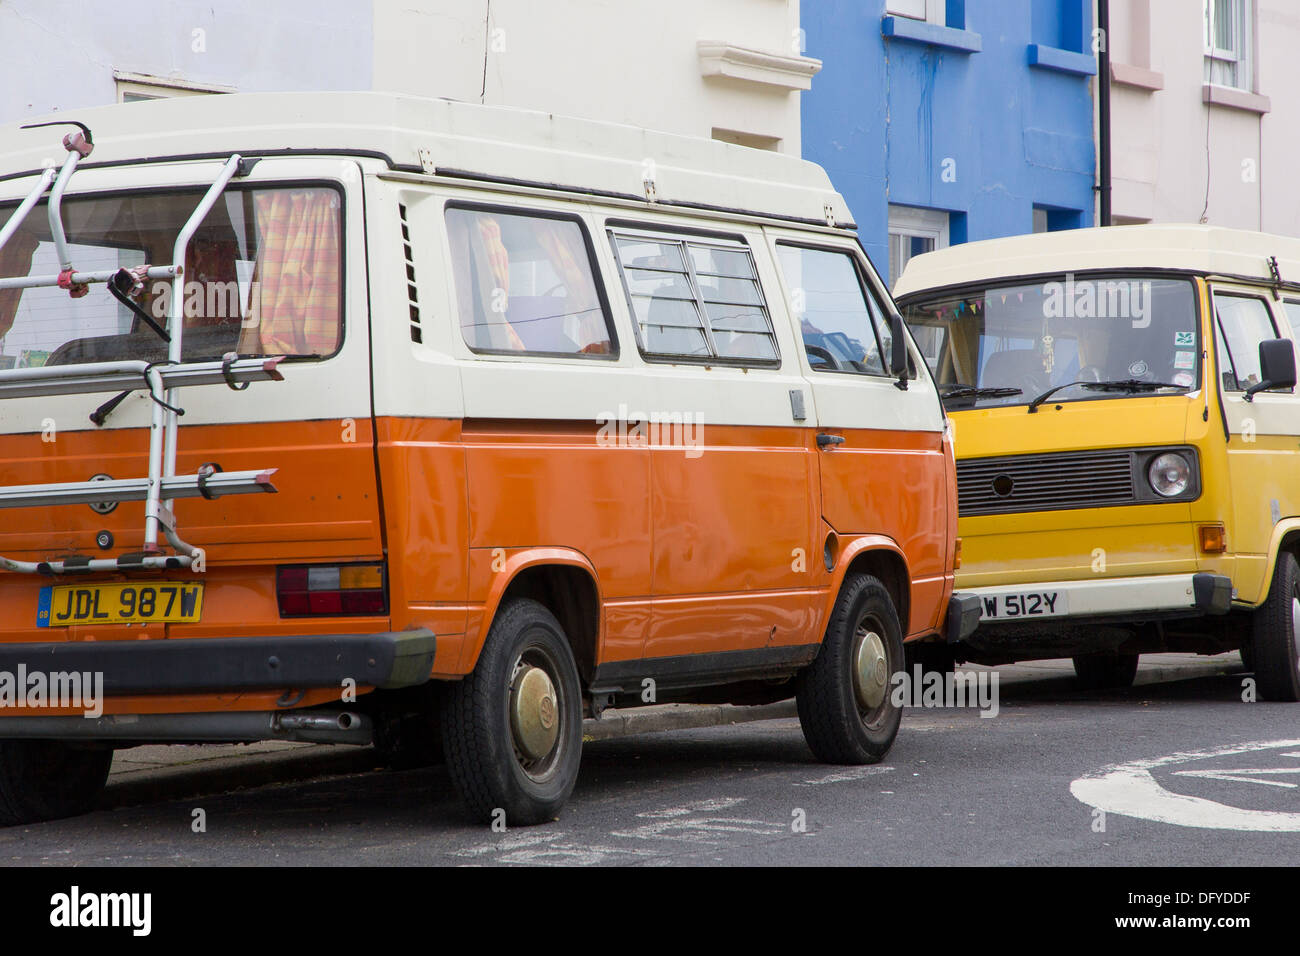 Two VW Transporter T25 camper vans parked on the street in the Hanover district of Brighton - Stock Image